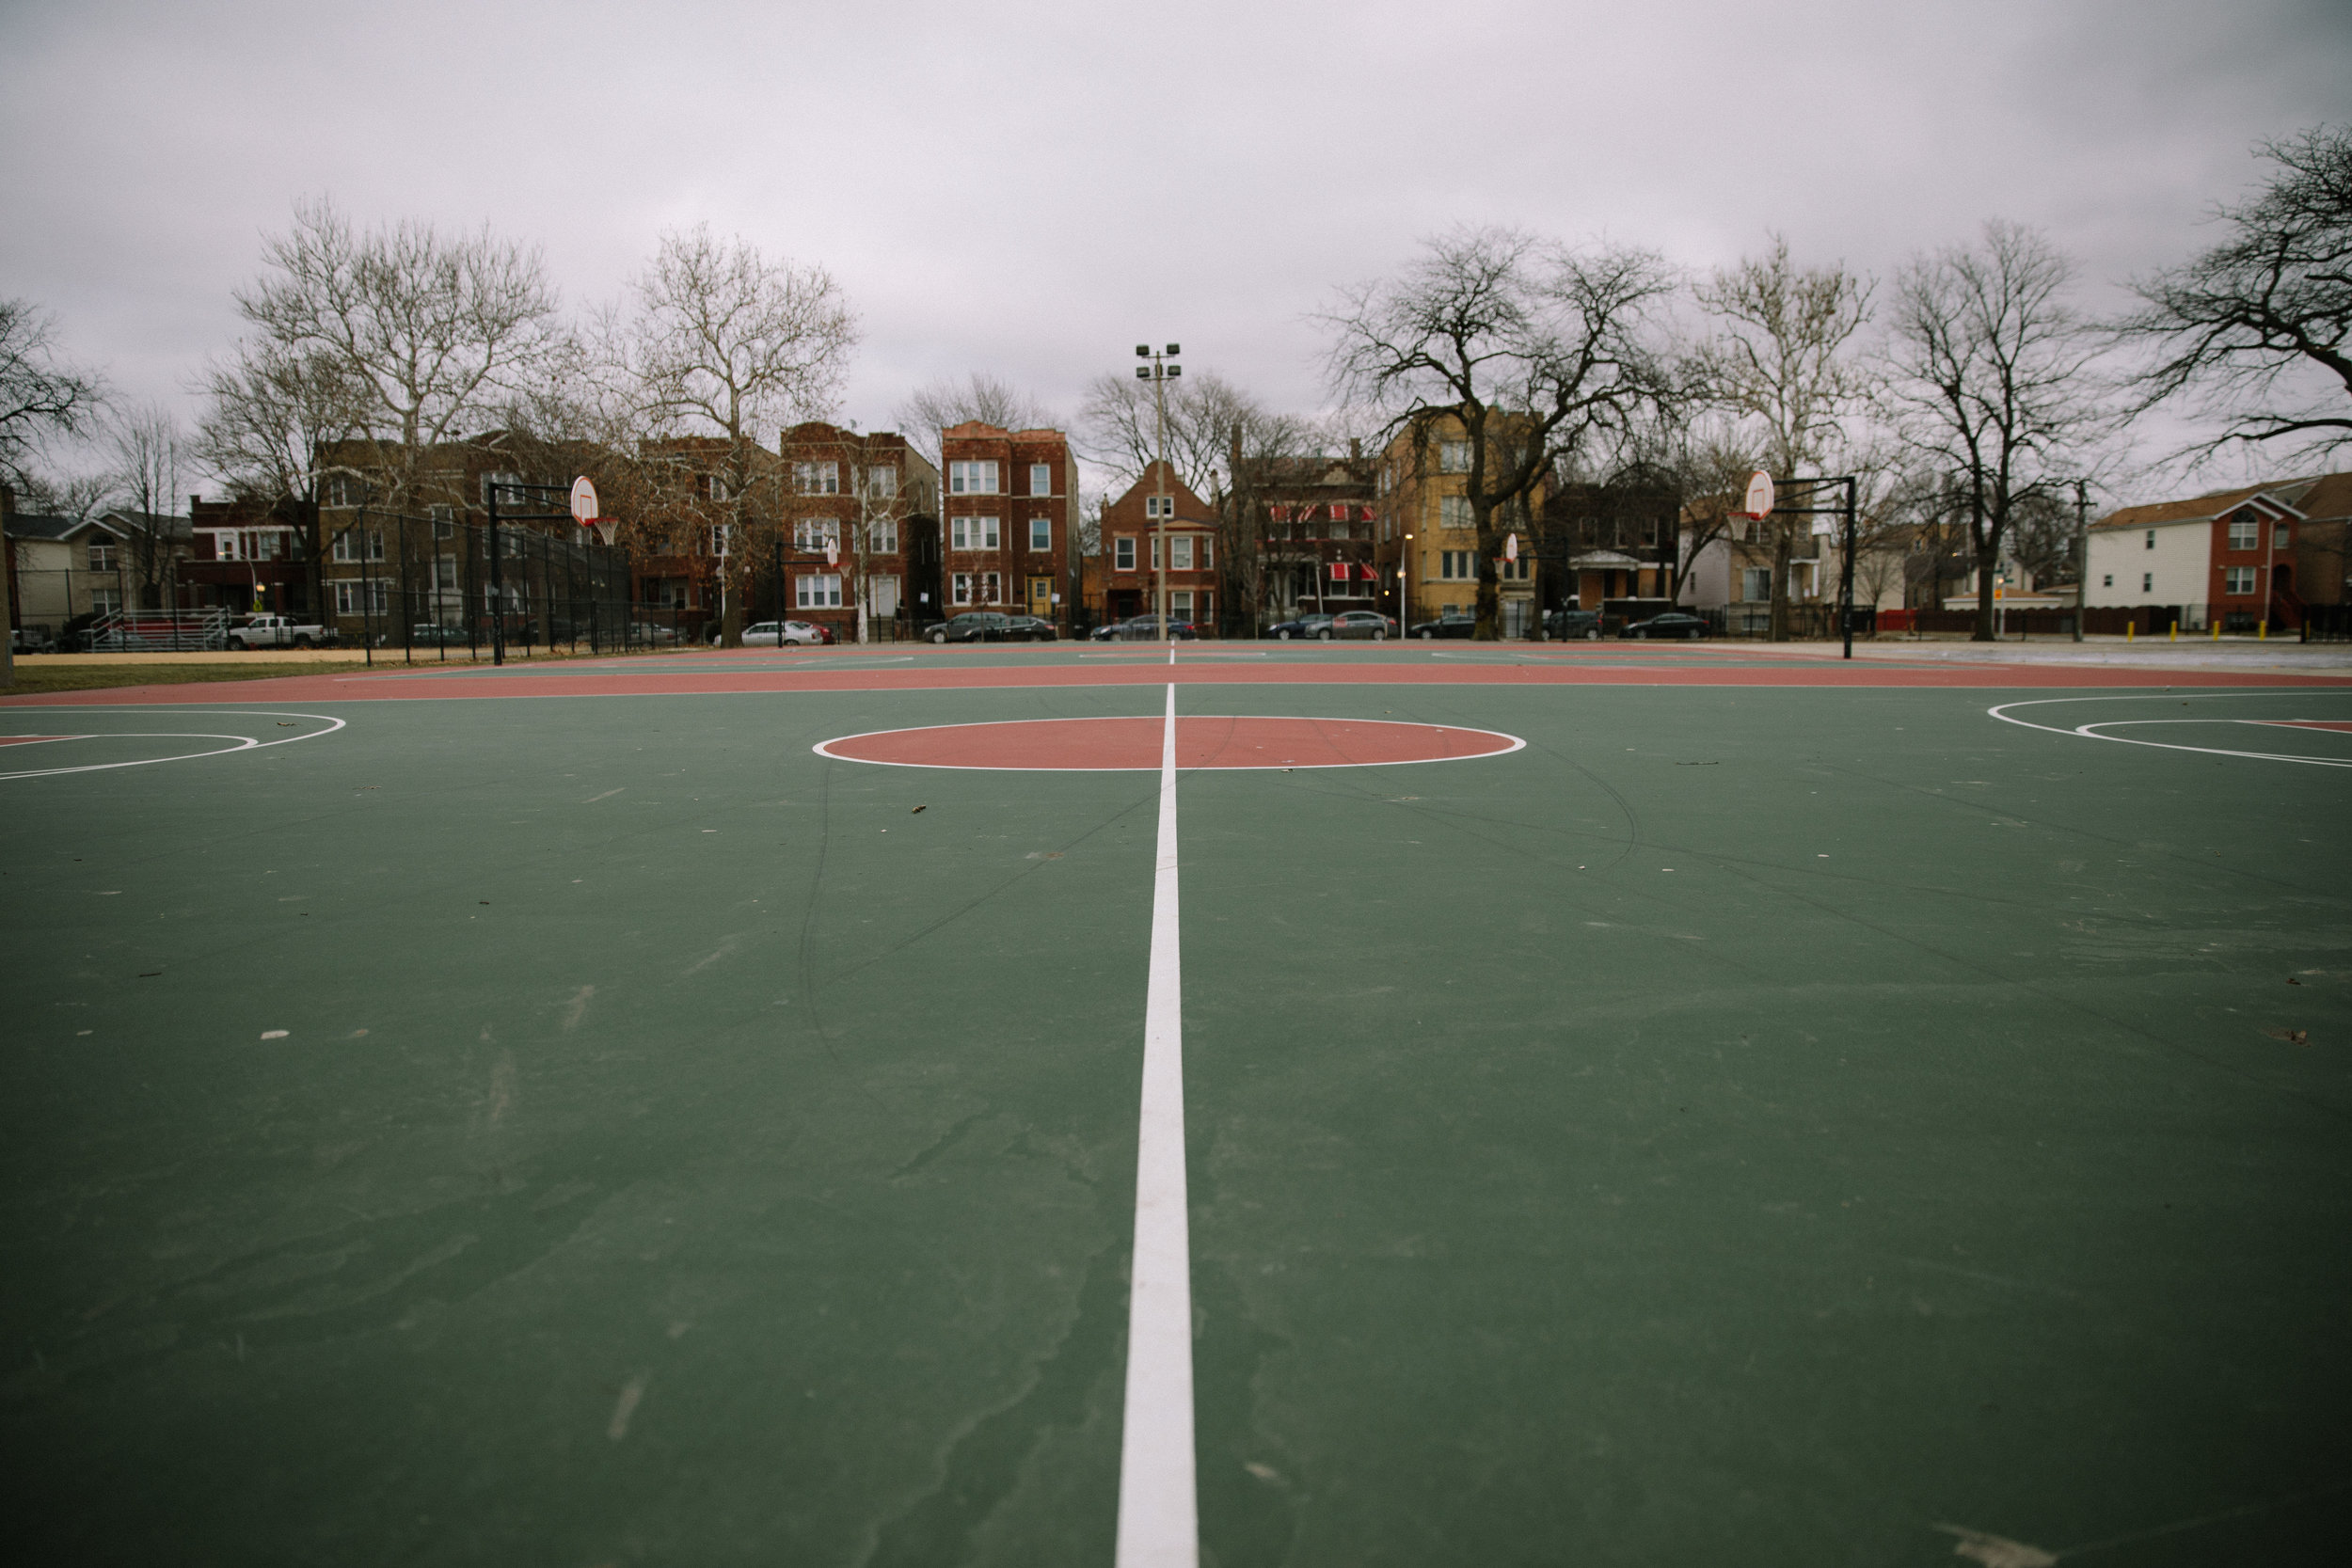 Basketball courts at Franklin Park on Chicago's west side. In 2017, Corniki Bornds only son, BJ, was murdered in a non-targeted shooting as he walked to the park to play basketball with his friends. In the aftermath of her son's death, Corniki found support through other mothers who had also lost children to gun violence. The support group is run by Parents for Peace and Justice, a support and advocacy organization in Chicago. MCC partners with Parents for Peace and Justice to help support their important work.